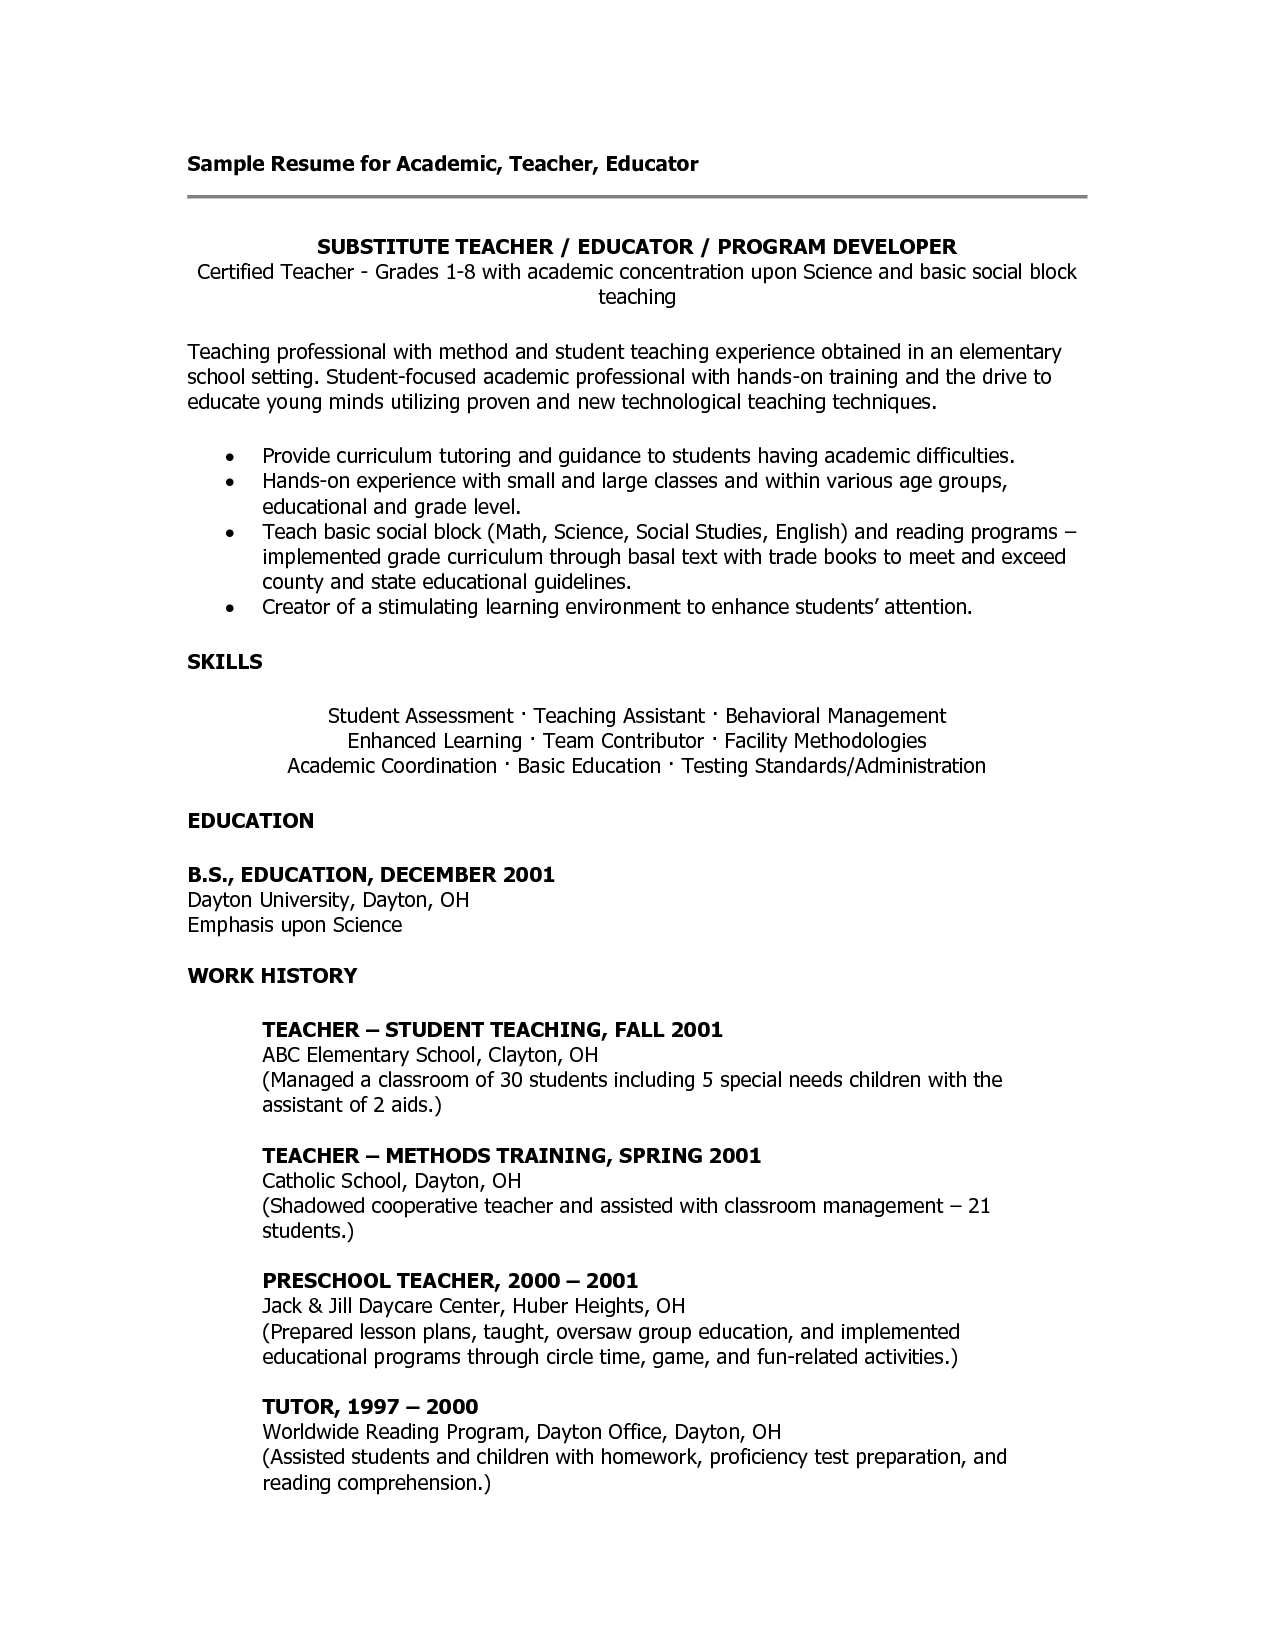 resume Substitute Teacher Description Resume sample teacher resumes substitute resume fcs pinterest resume